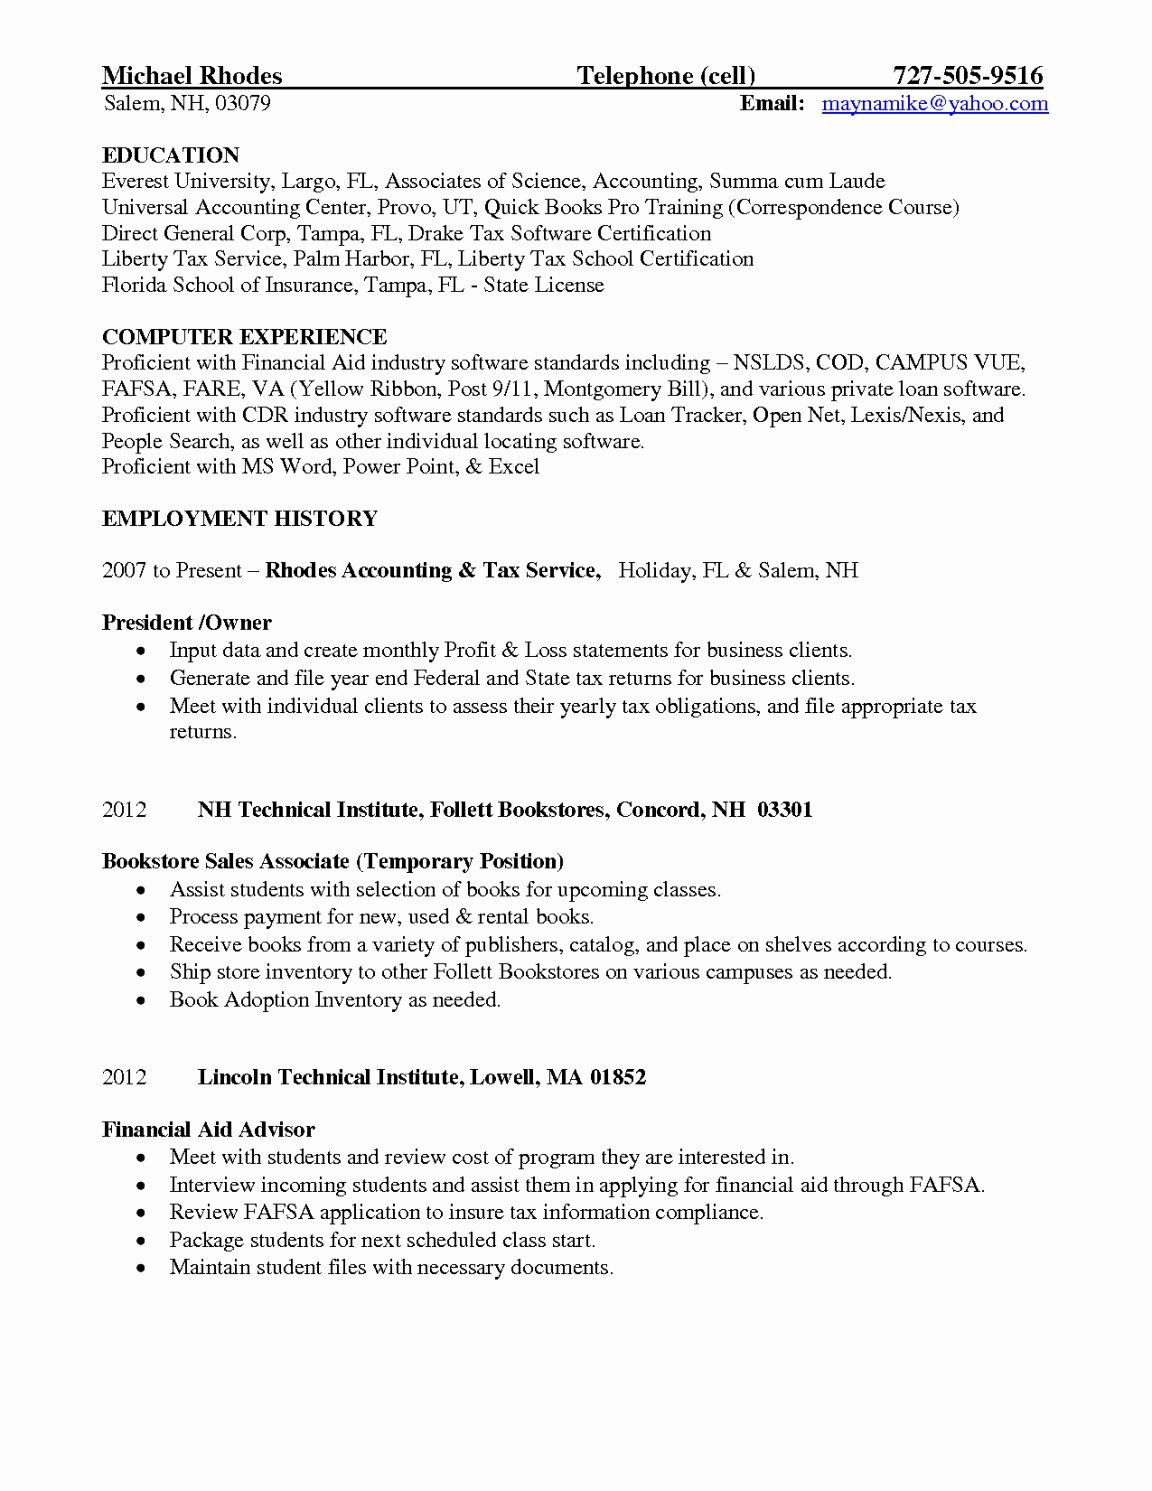 Cover Letter Template Ymca Academic Cv Job Cover Letter Cover